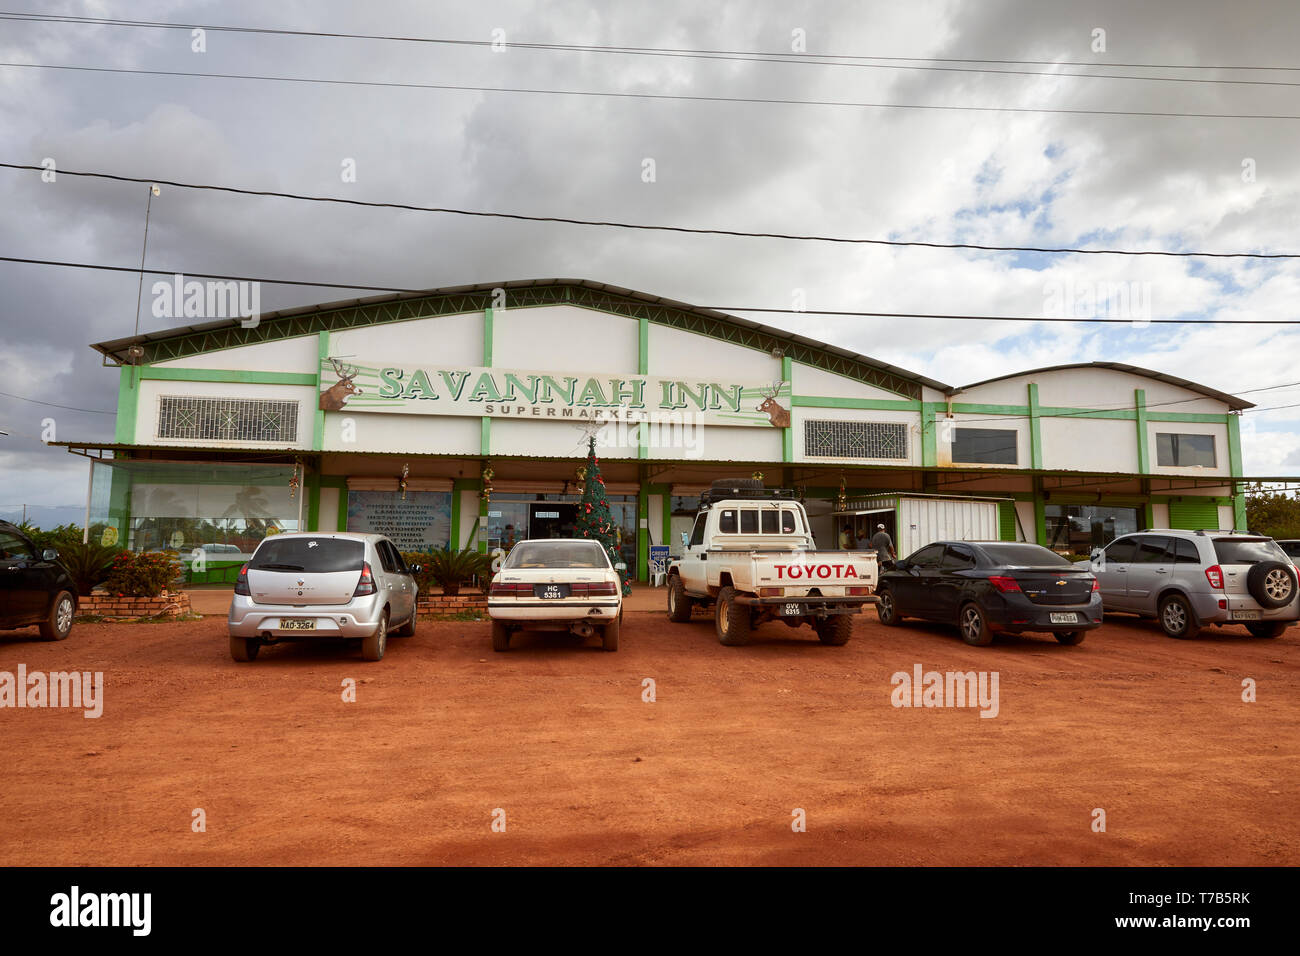 Cars parked in front of Savannah Inn Supermarket on Rupununi Road in Lethem Guyana South America - Stock Image